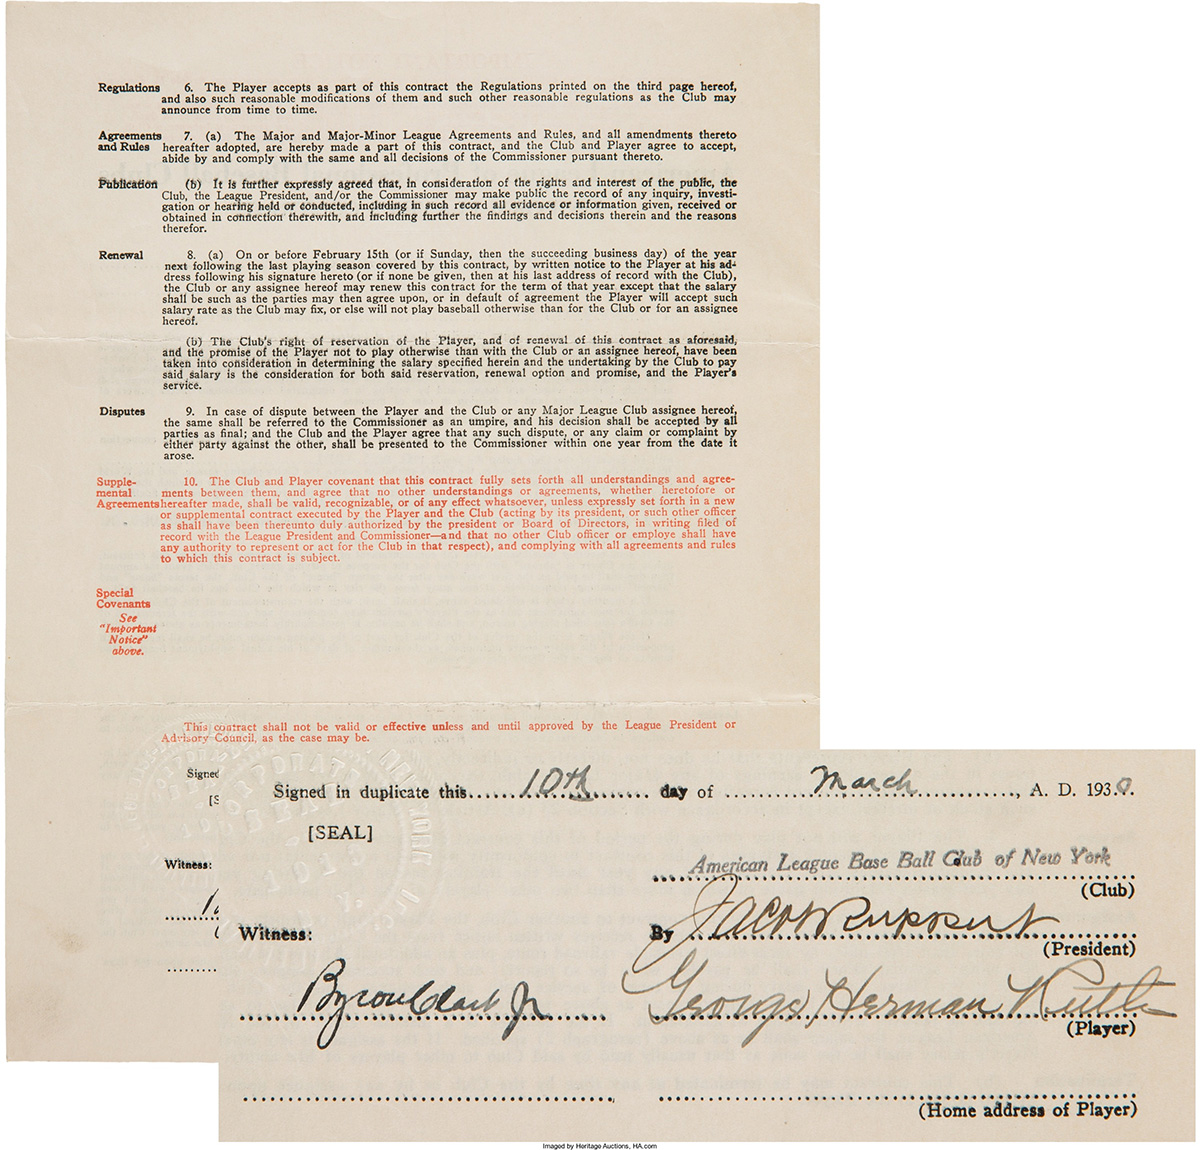 Babe Ruth's Richest Contract as a Yankee Headed for Auction